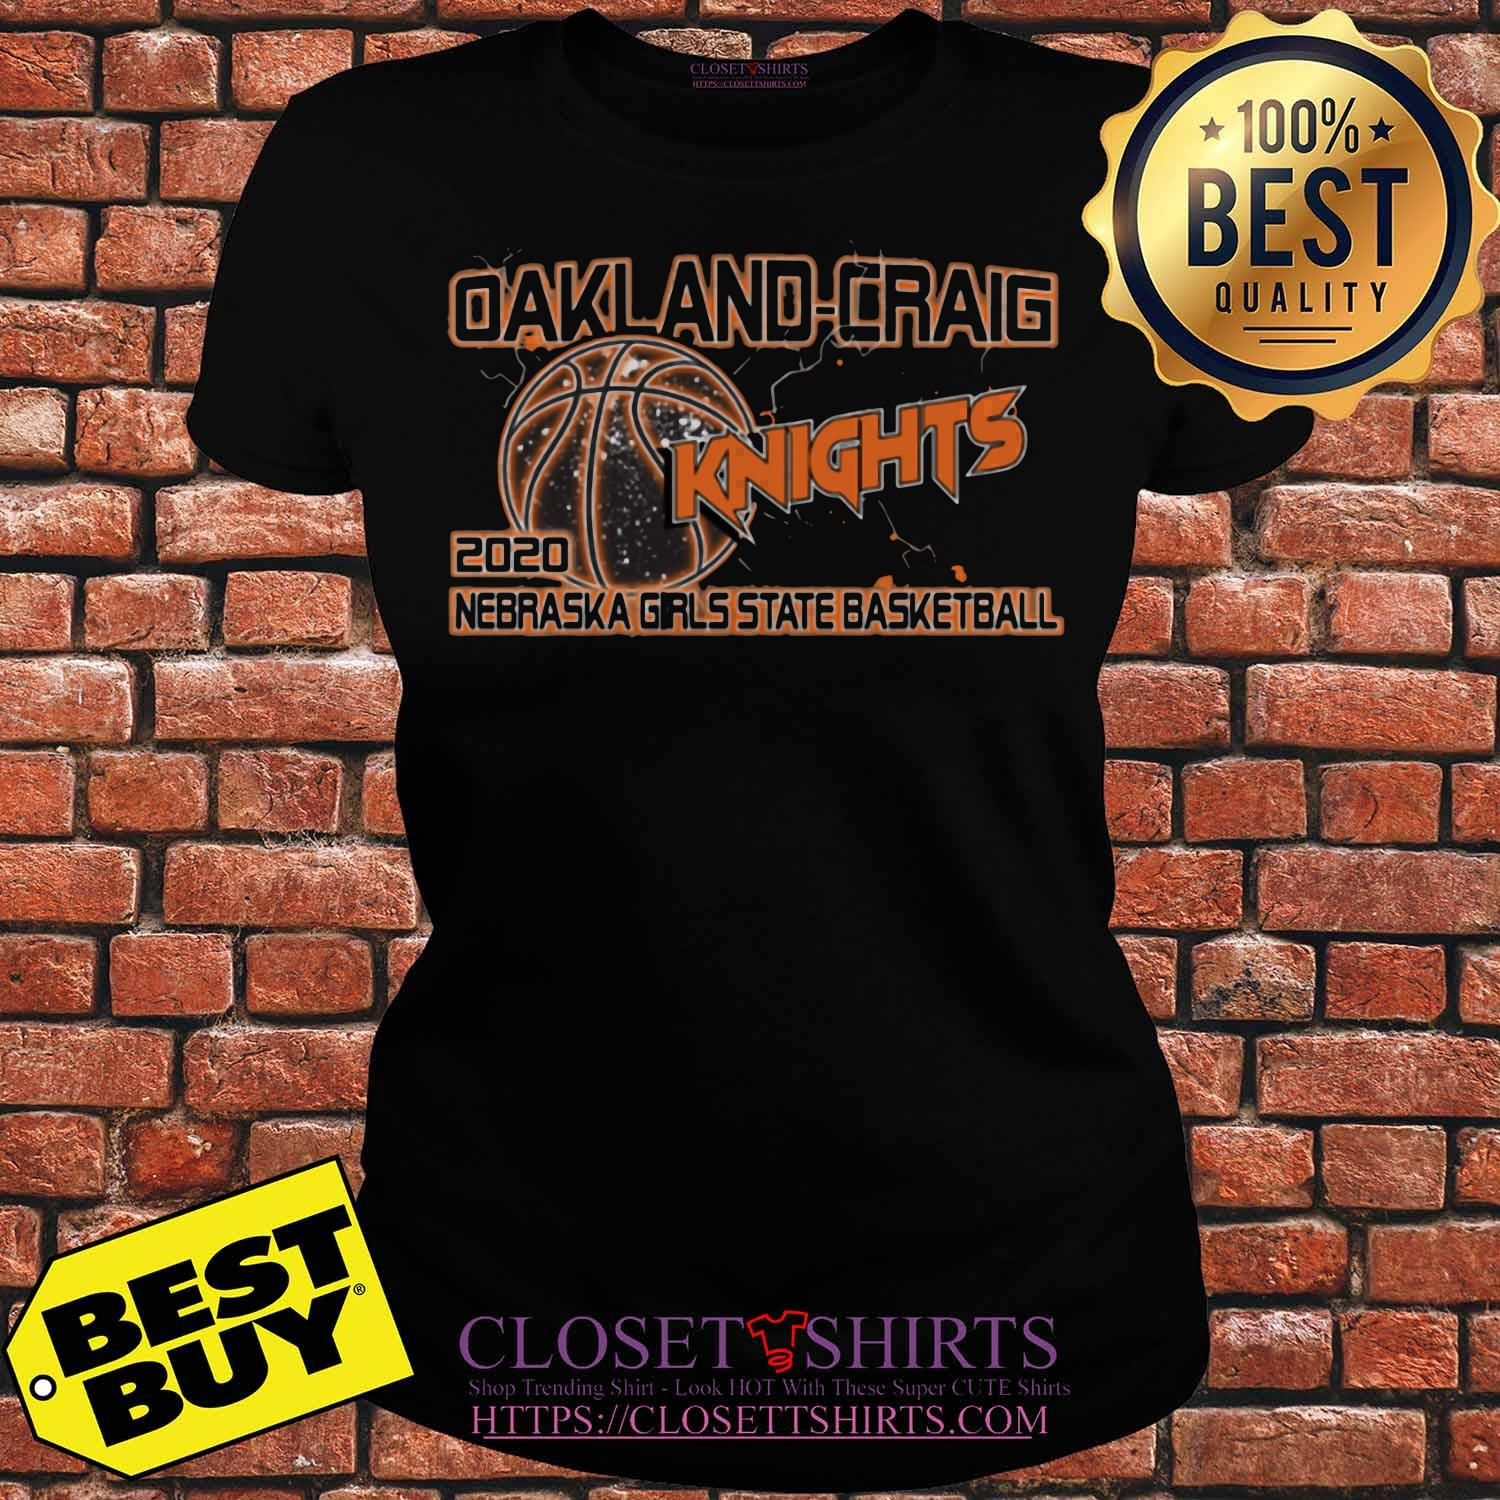 Oakland Craig Knight 2020 Nebraska Girls State Basketball Ladies tee